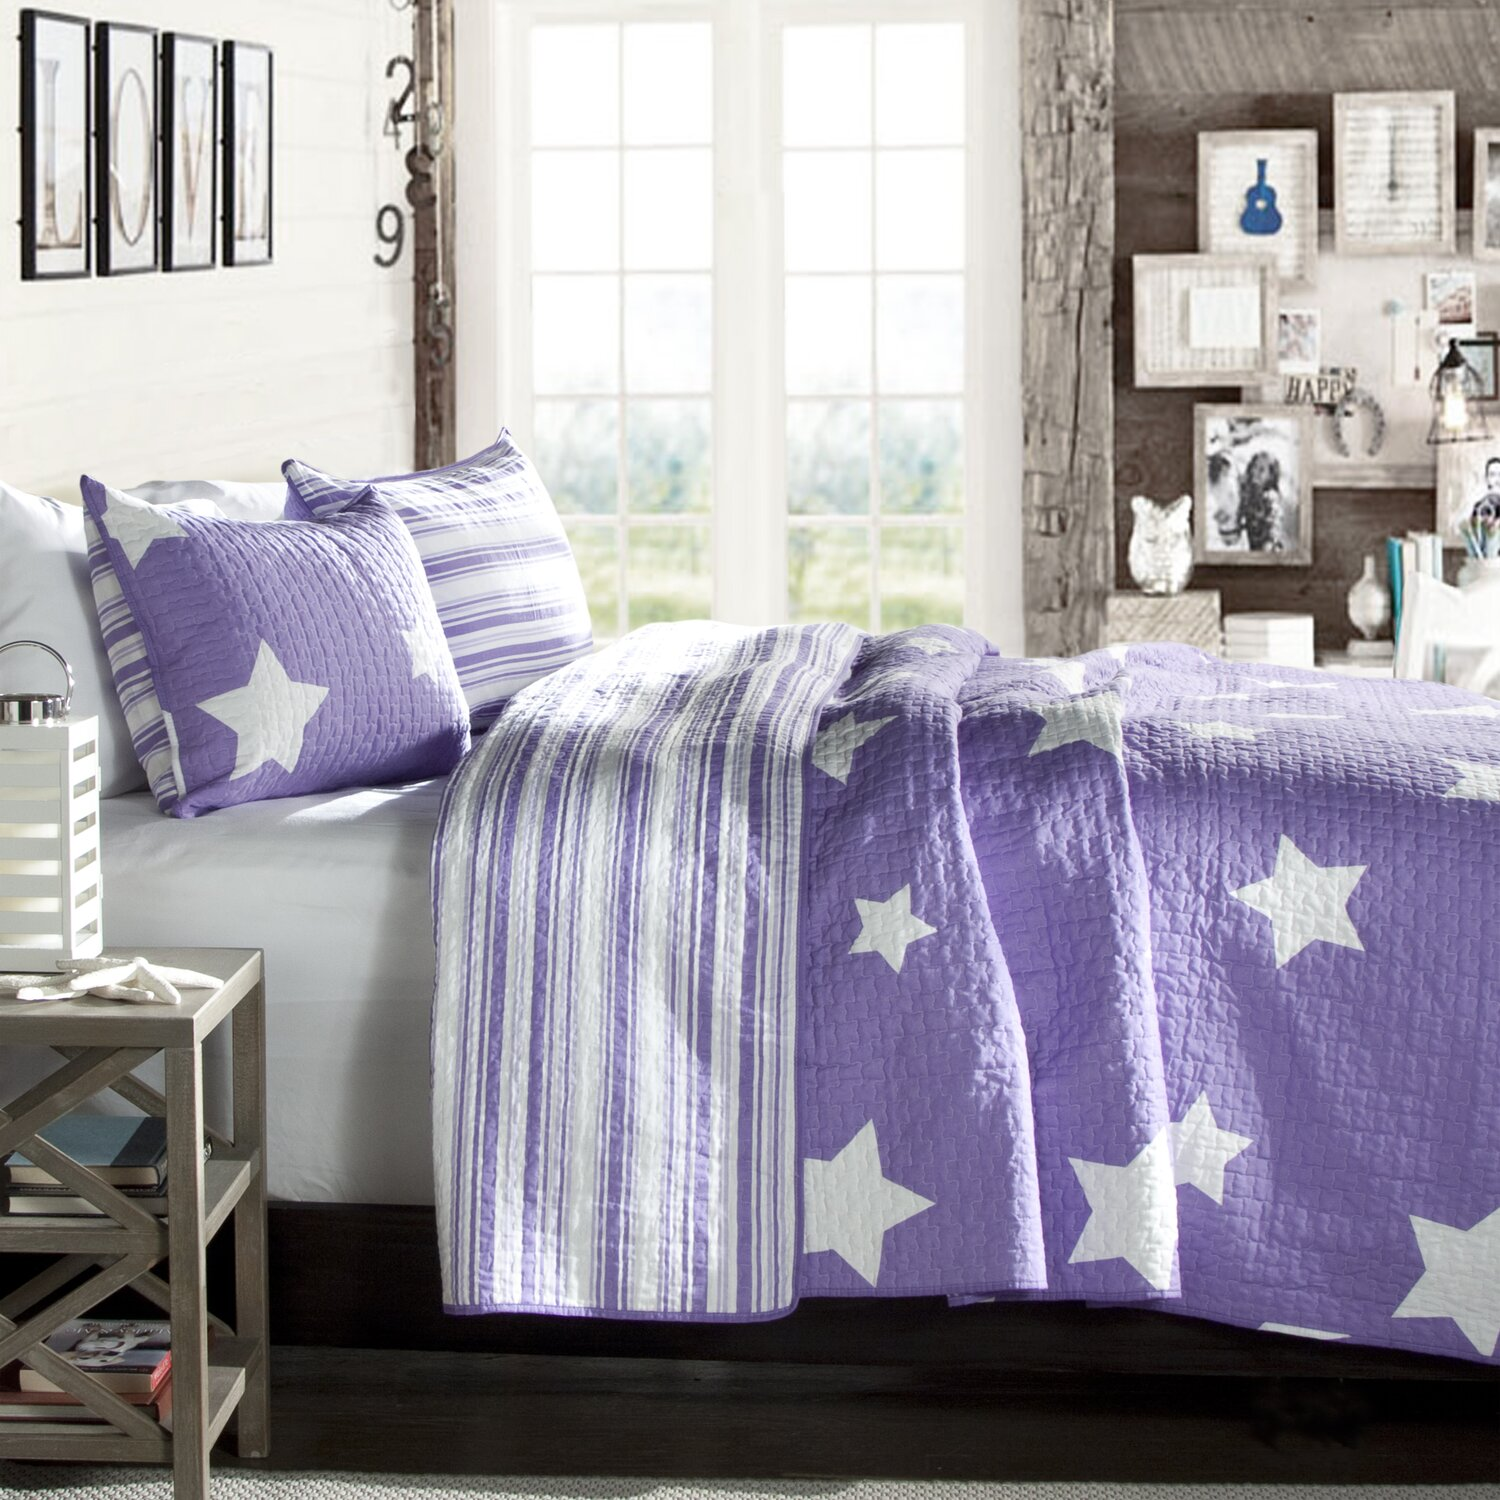 white bed trends sets popular comforter set blue nursery purple beddings inspiration queen fascinating black for dark also ideas unbelievable picture pict sheets and